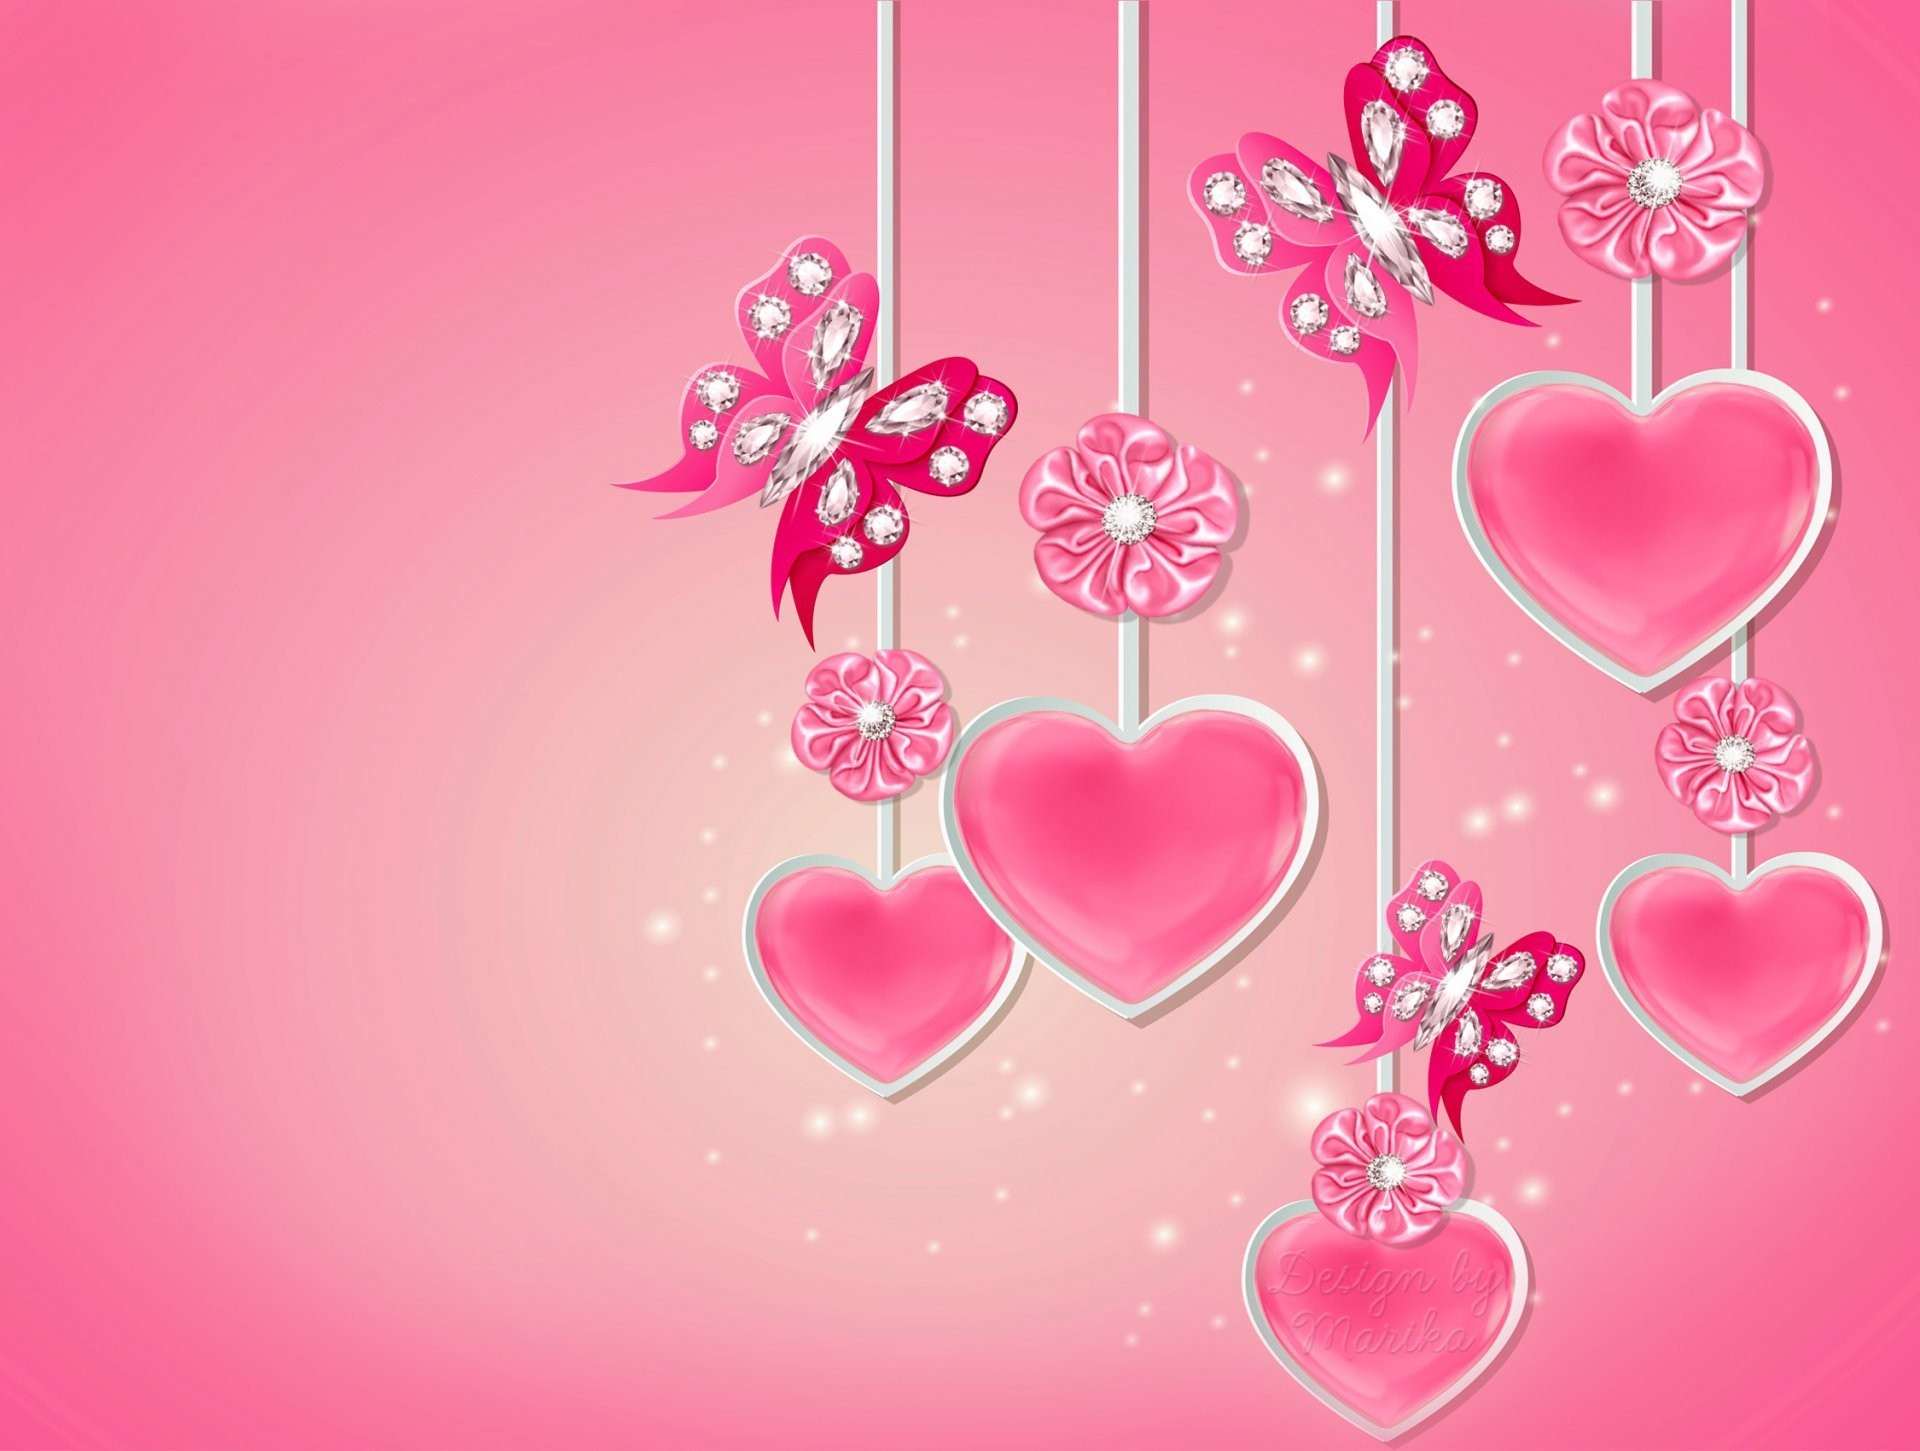 Love Heart Design Wallpaper : Pink Love Heart Backgrounds ??